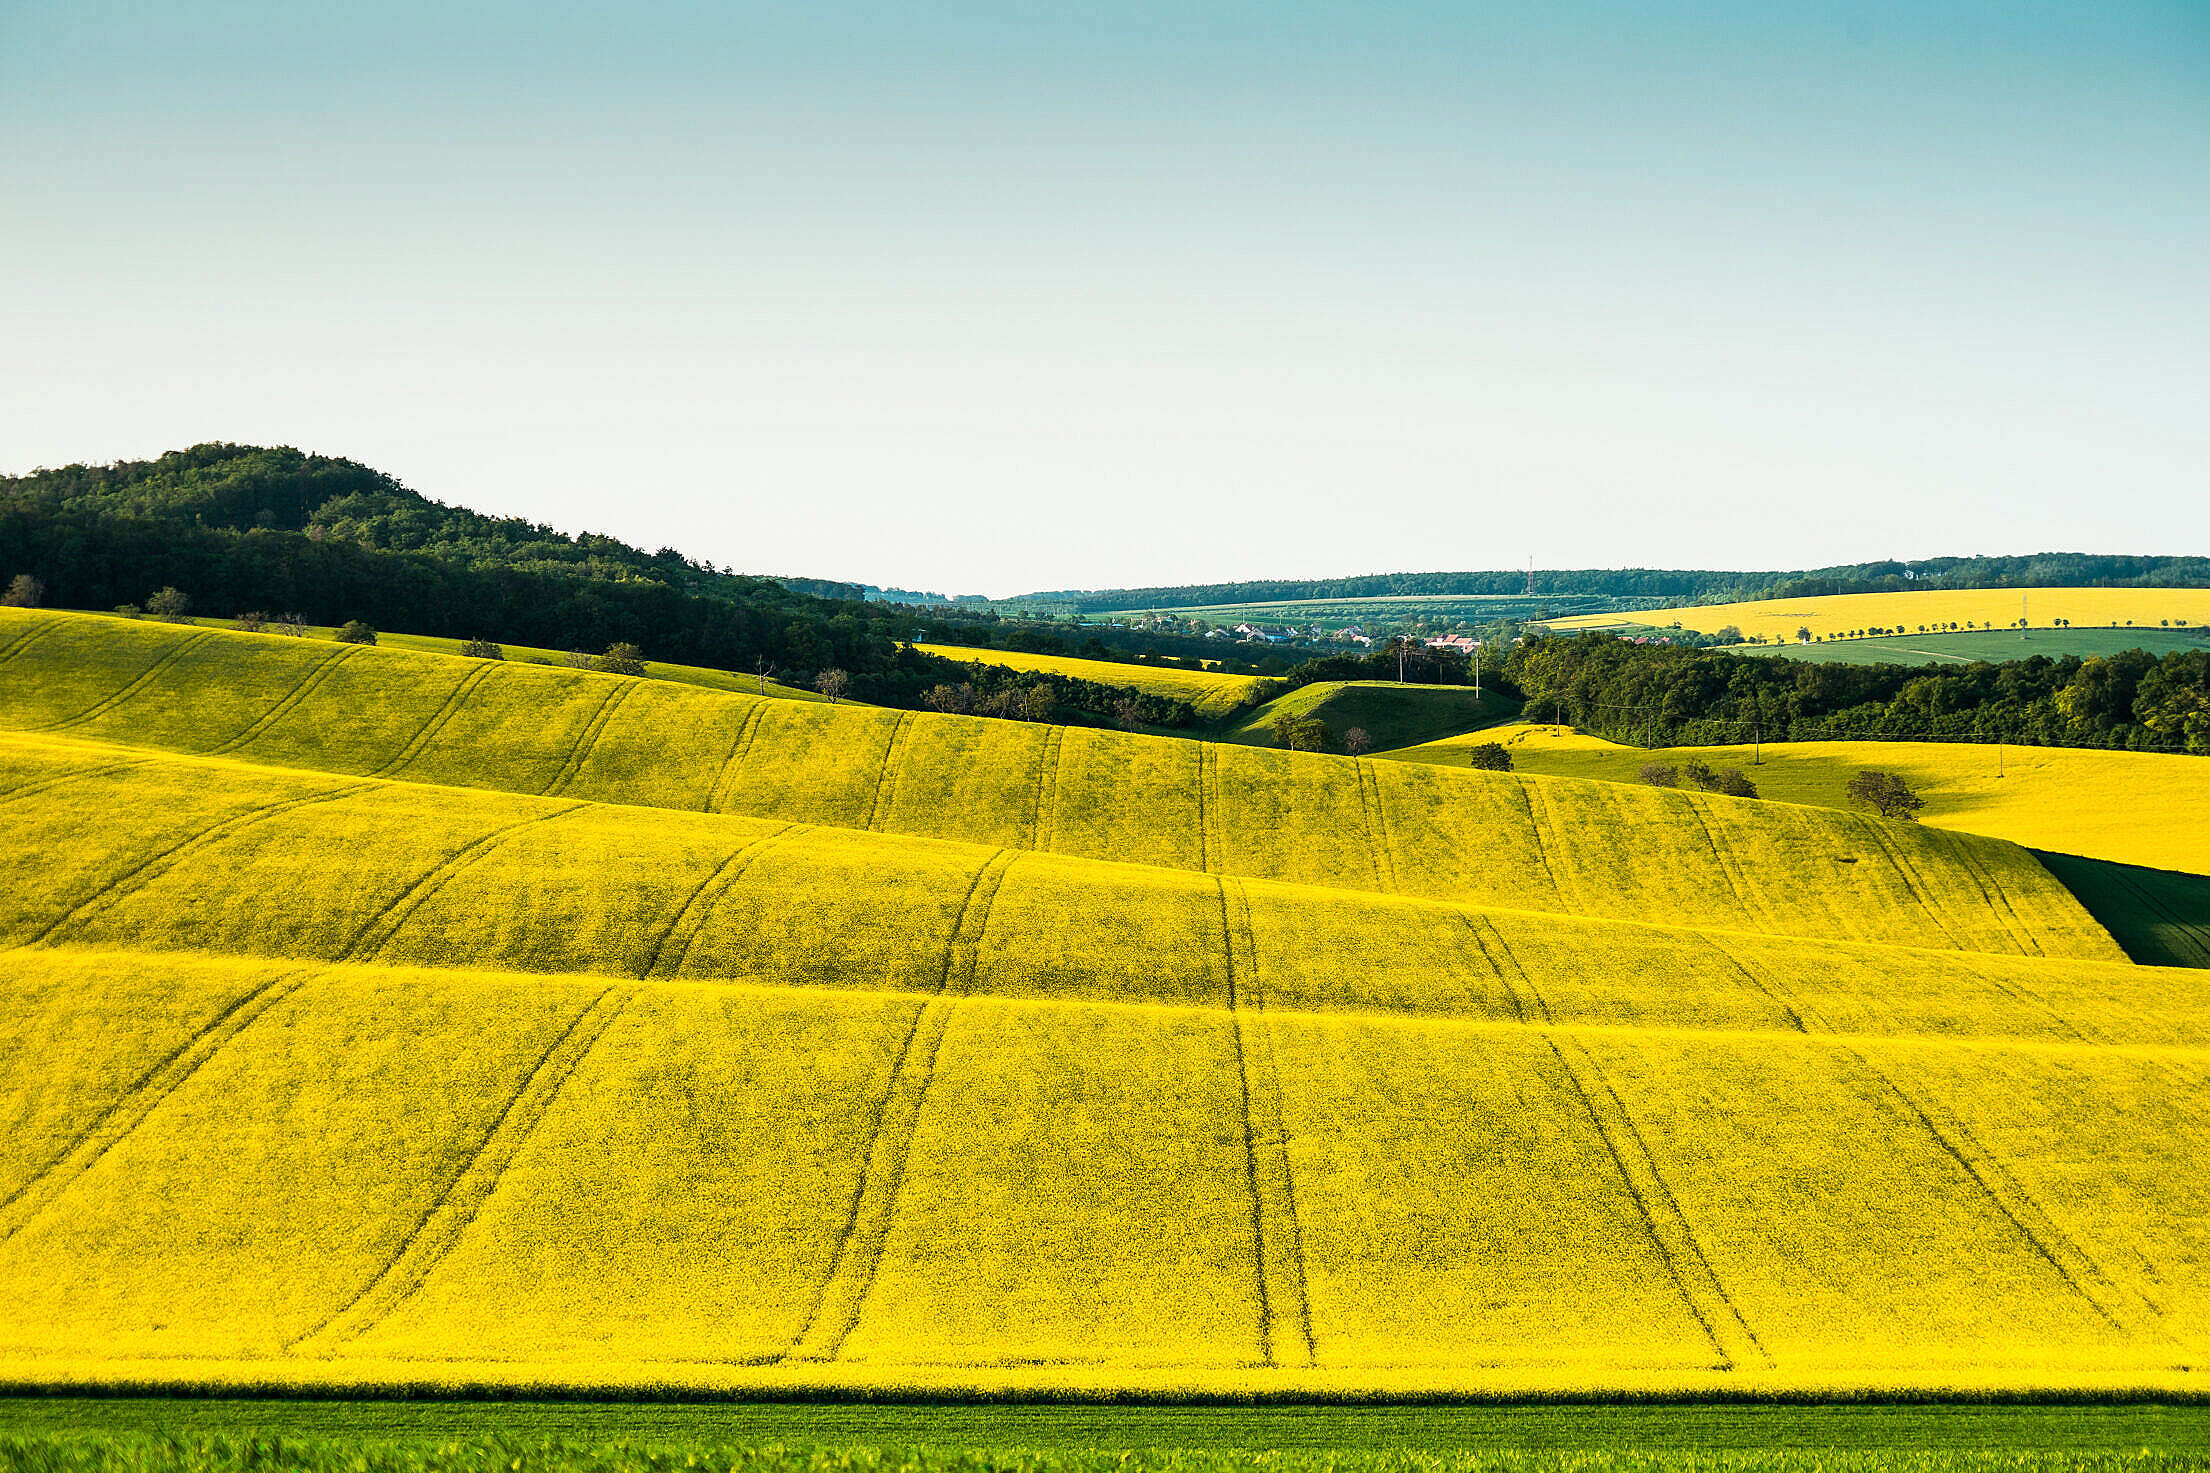 Hills and Fields of South Moravia, Czechia Free Stock Photo